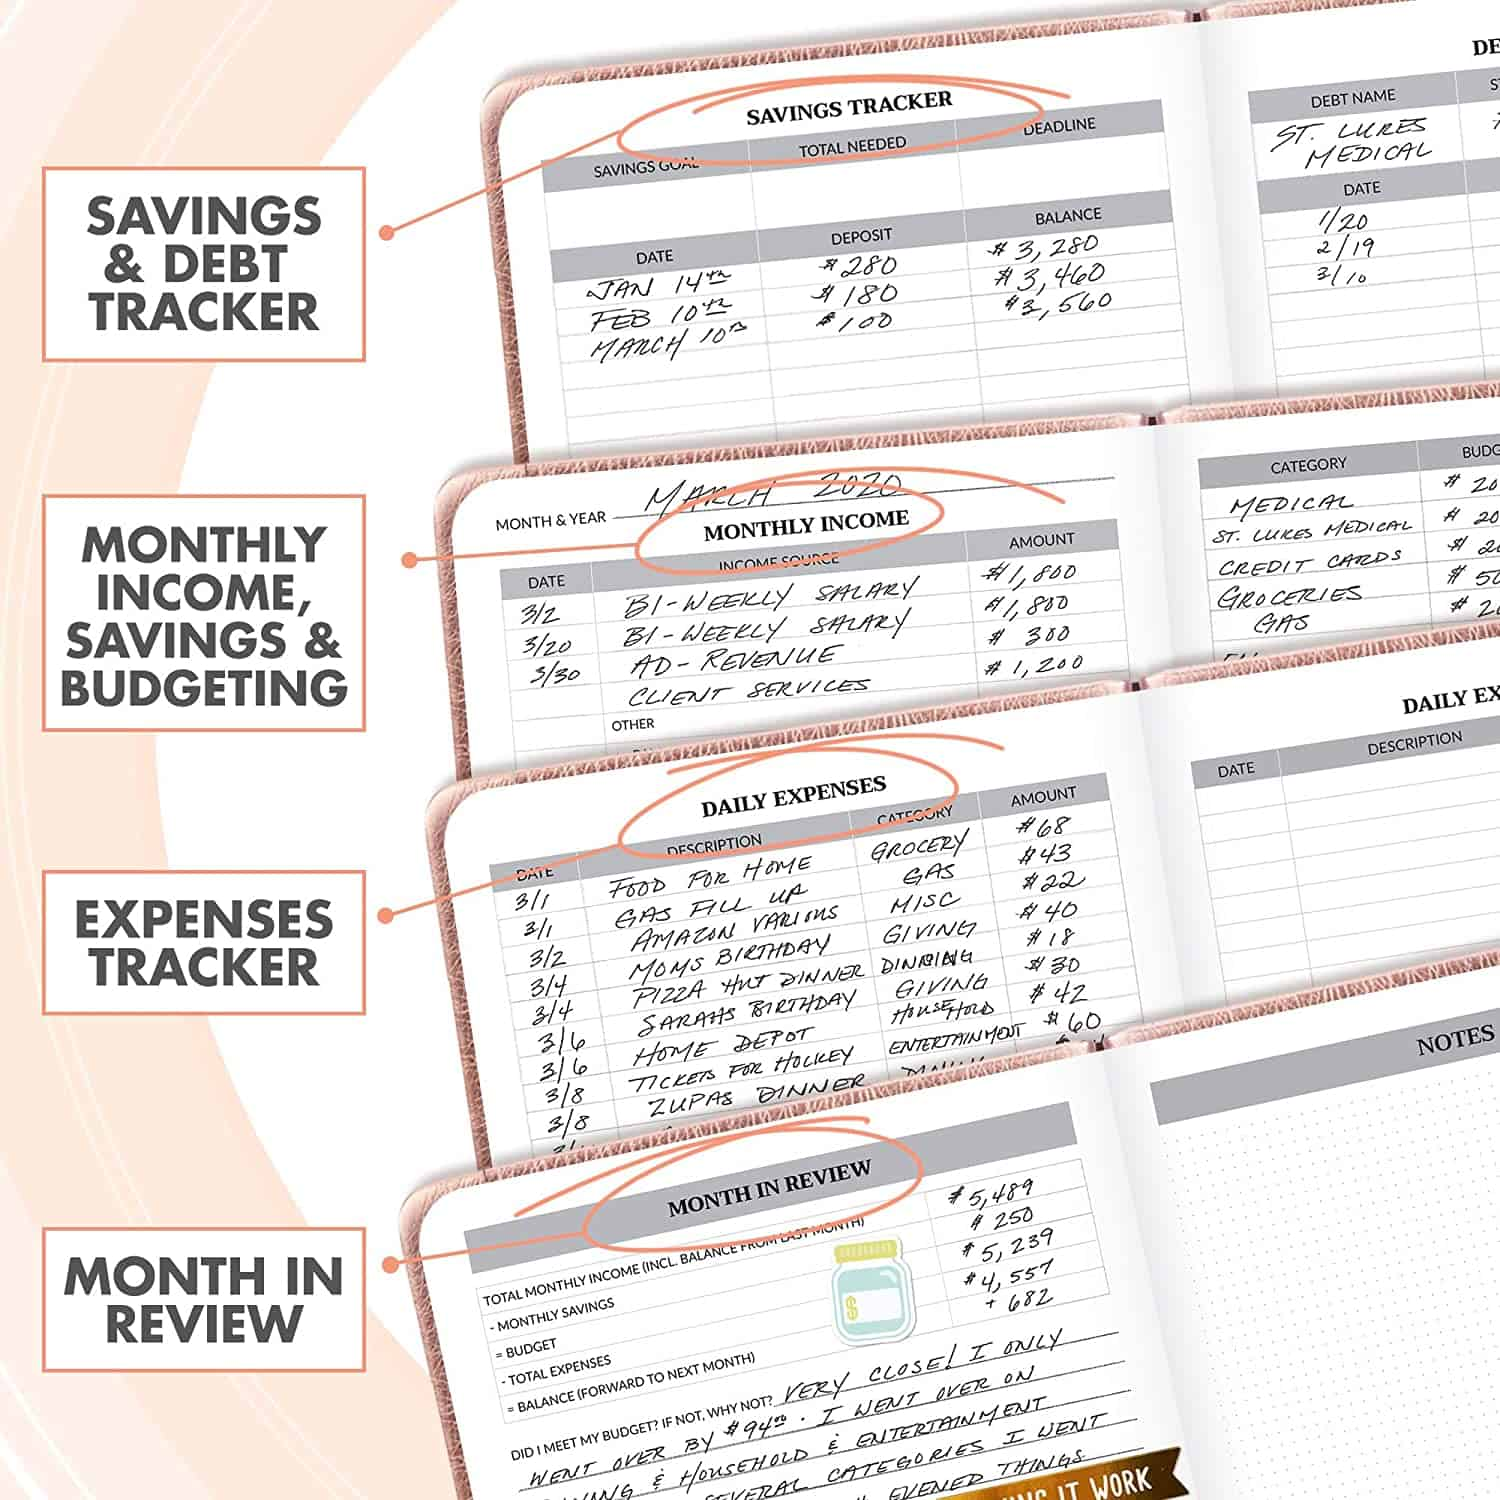 simplified monthly book by Zicoto